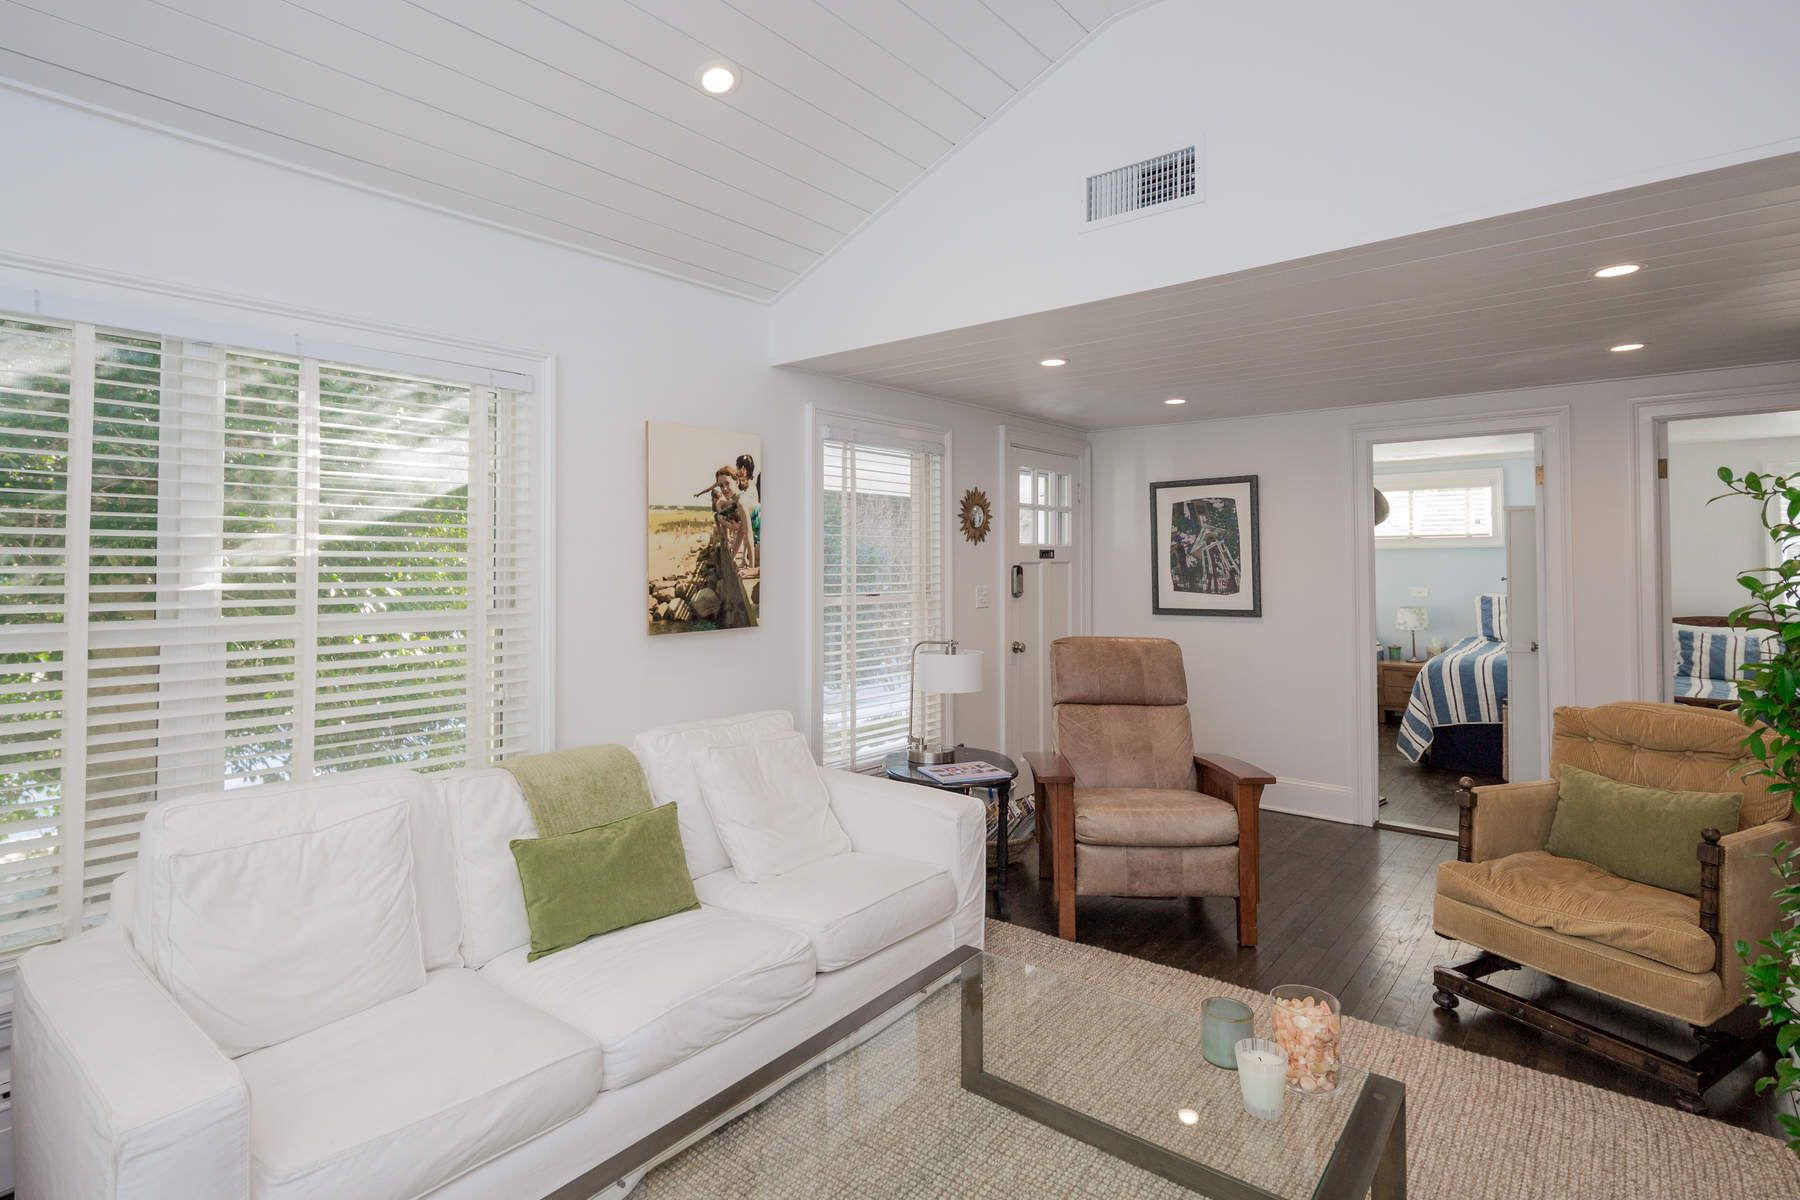 Single Family Home for Rent at WALK TO VILLAGE AND OCEAN 145 North Main Street East Hampton, New York 11937 United States